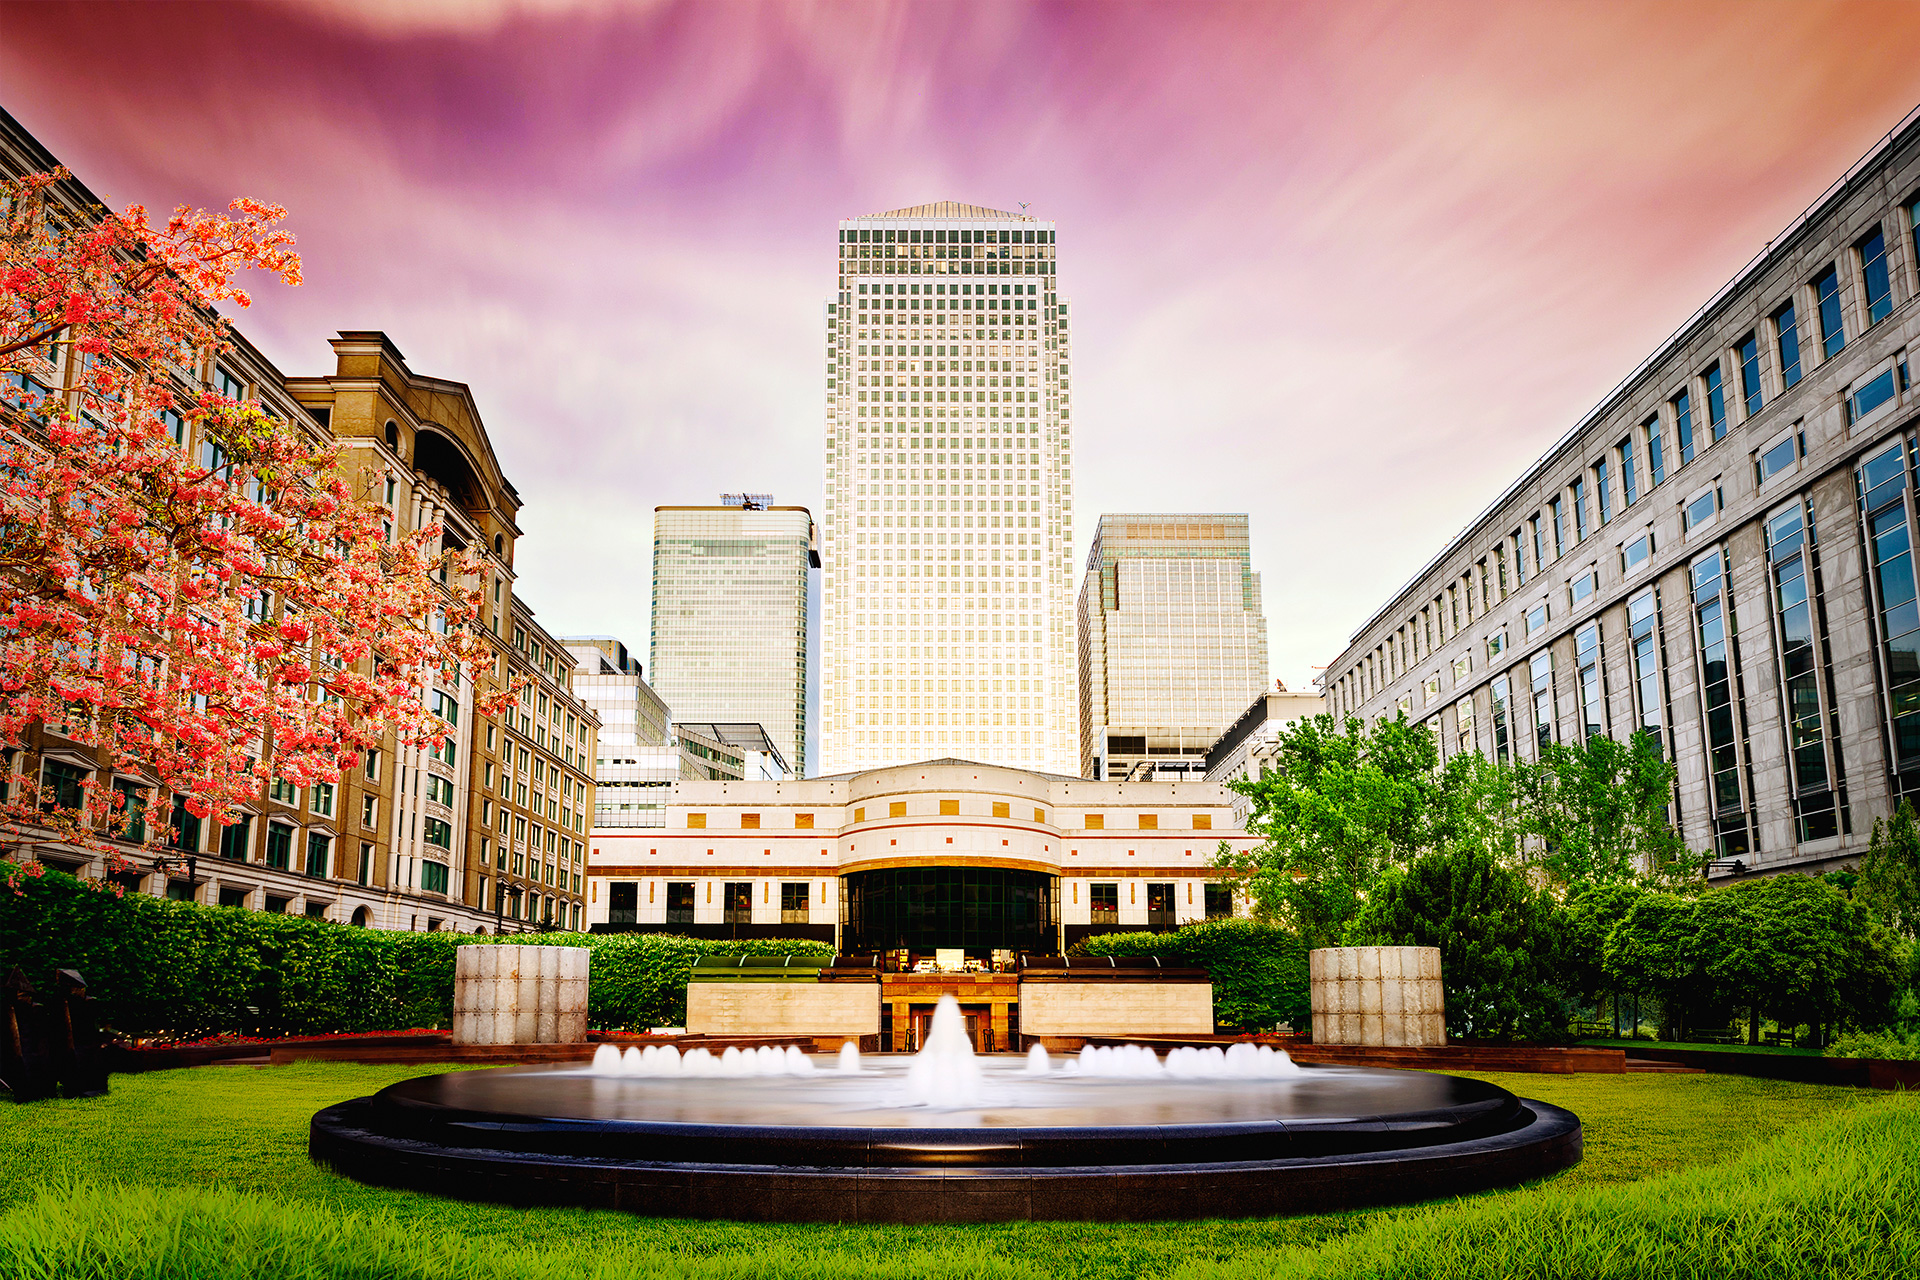 4_Blog_Canary_Wharf_Retouching